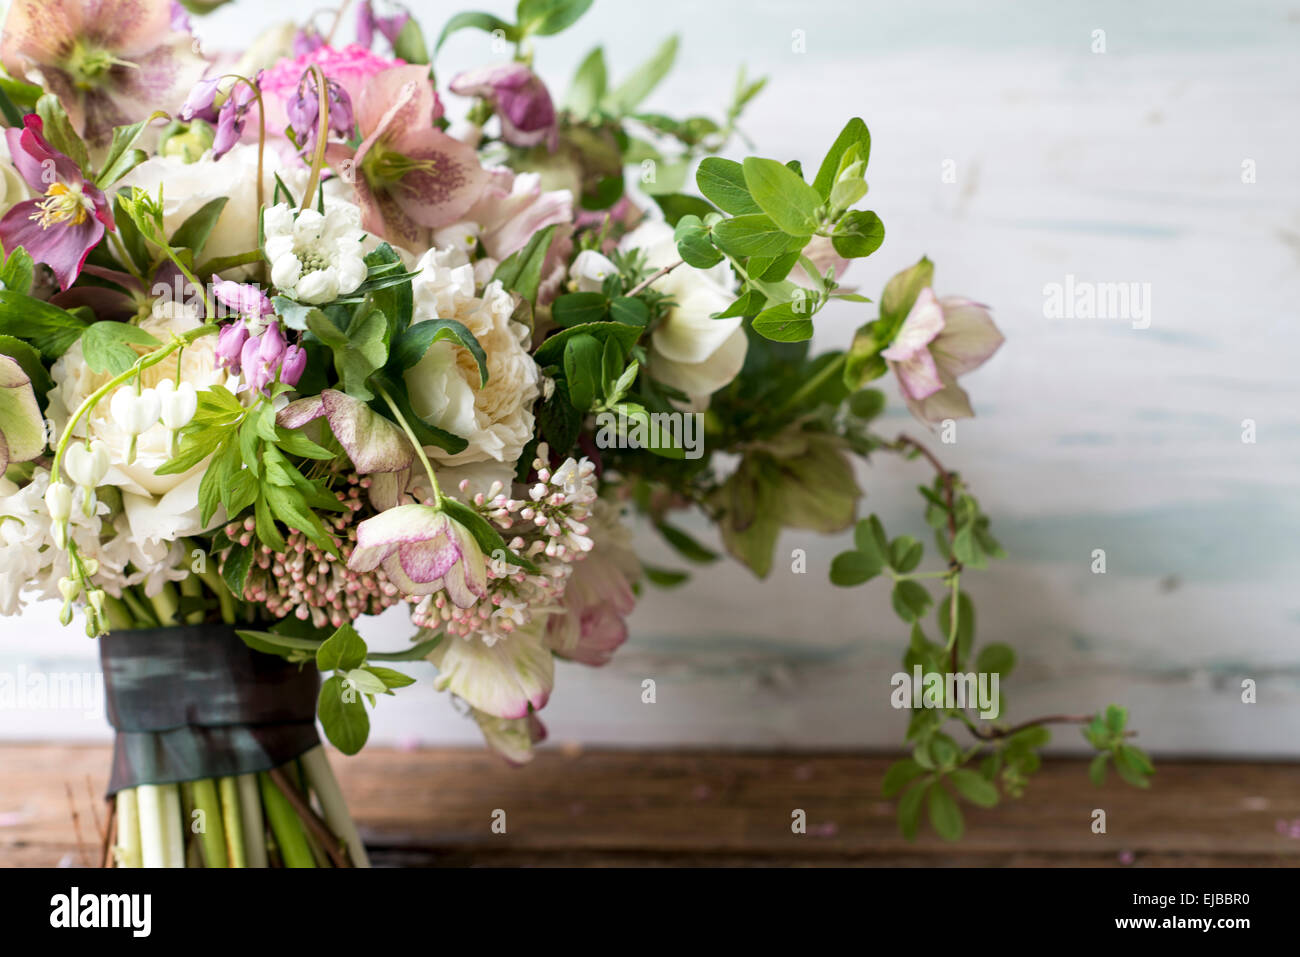 Abundant floral bouquet of spring blooming flowers including stock abundant floral bouquet of spring blooming flowers including ranunculus hellebore parrot tulip tulipa and white bleeding heart izmirmasajfo